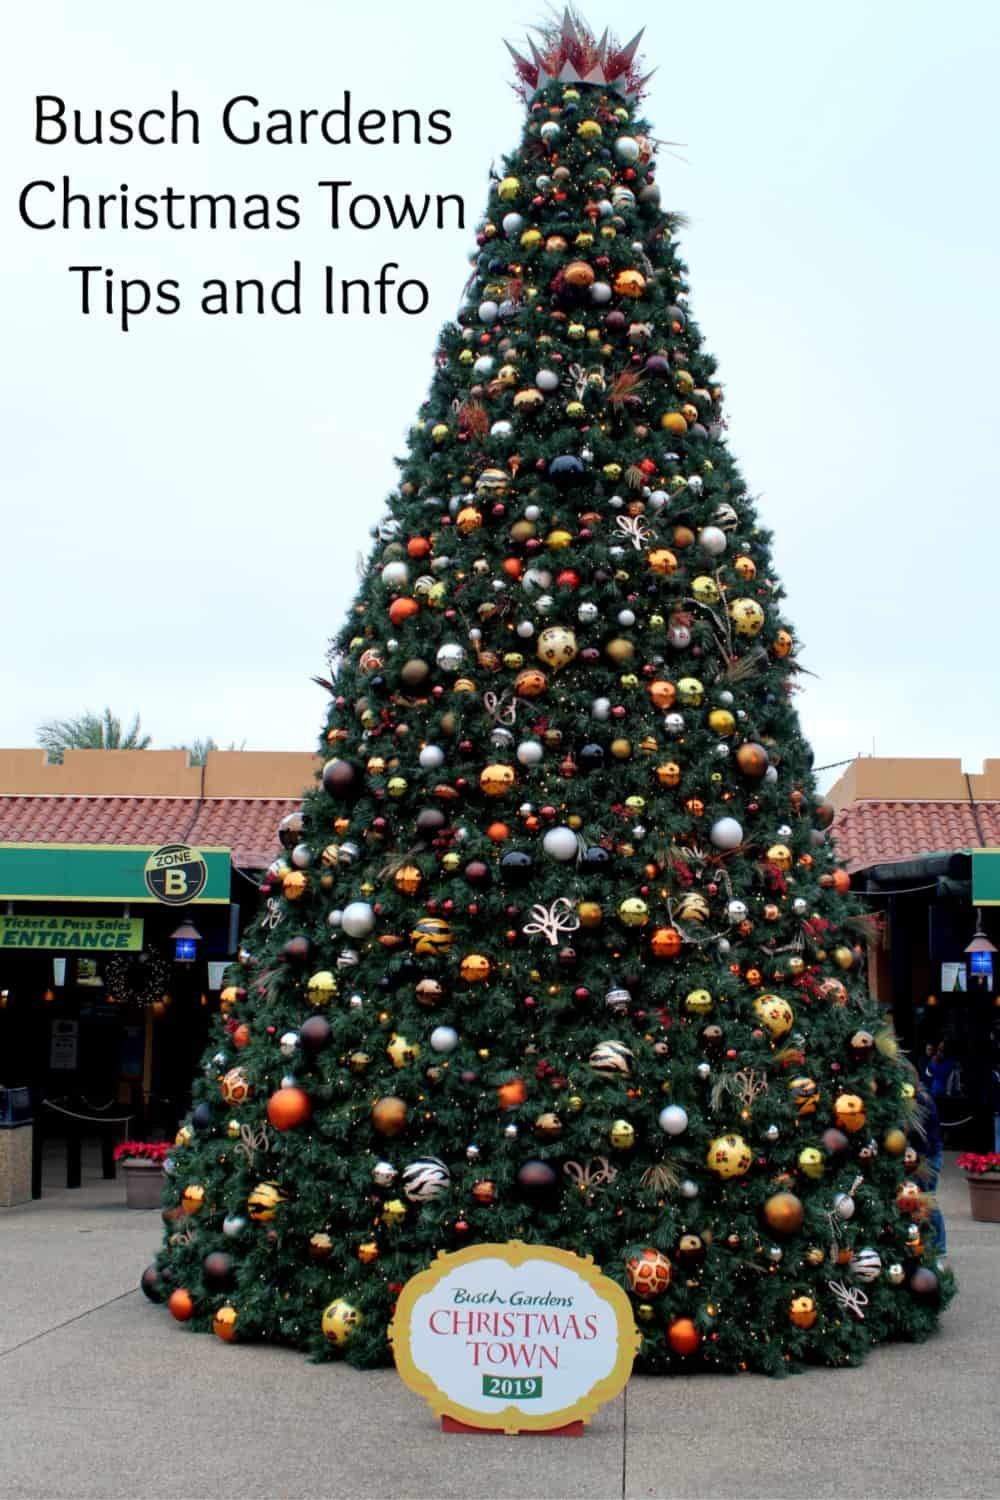 877d03dccc7923c2a799c04145260dce - Tips For Christmas Town Busch Gardens